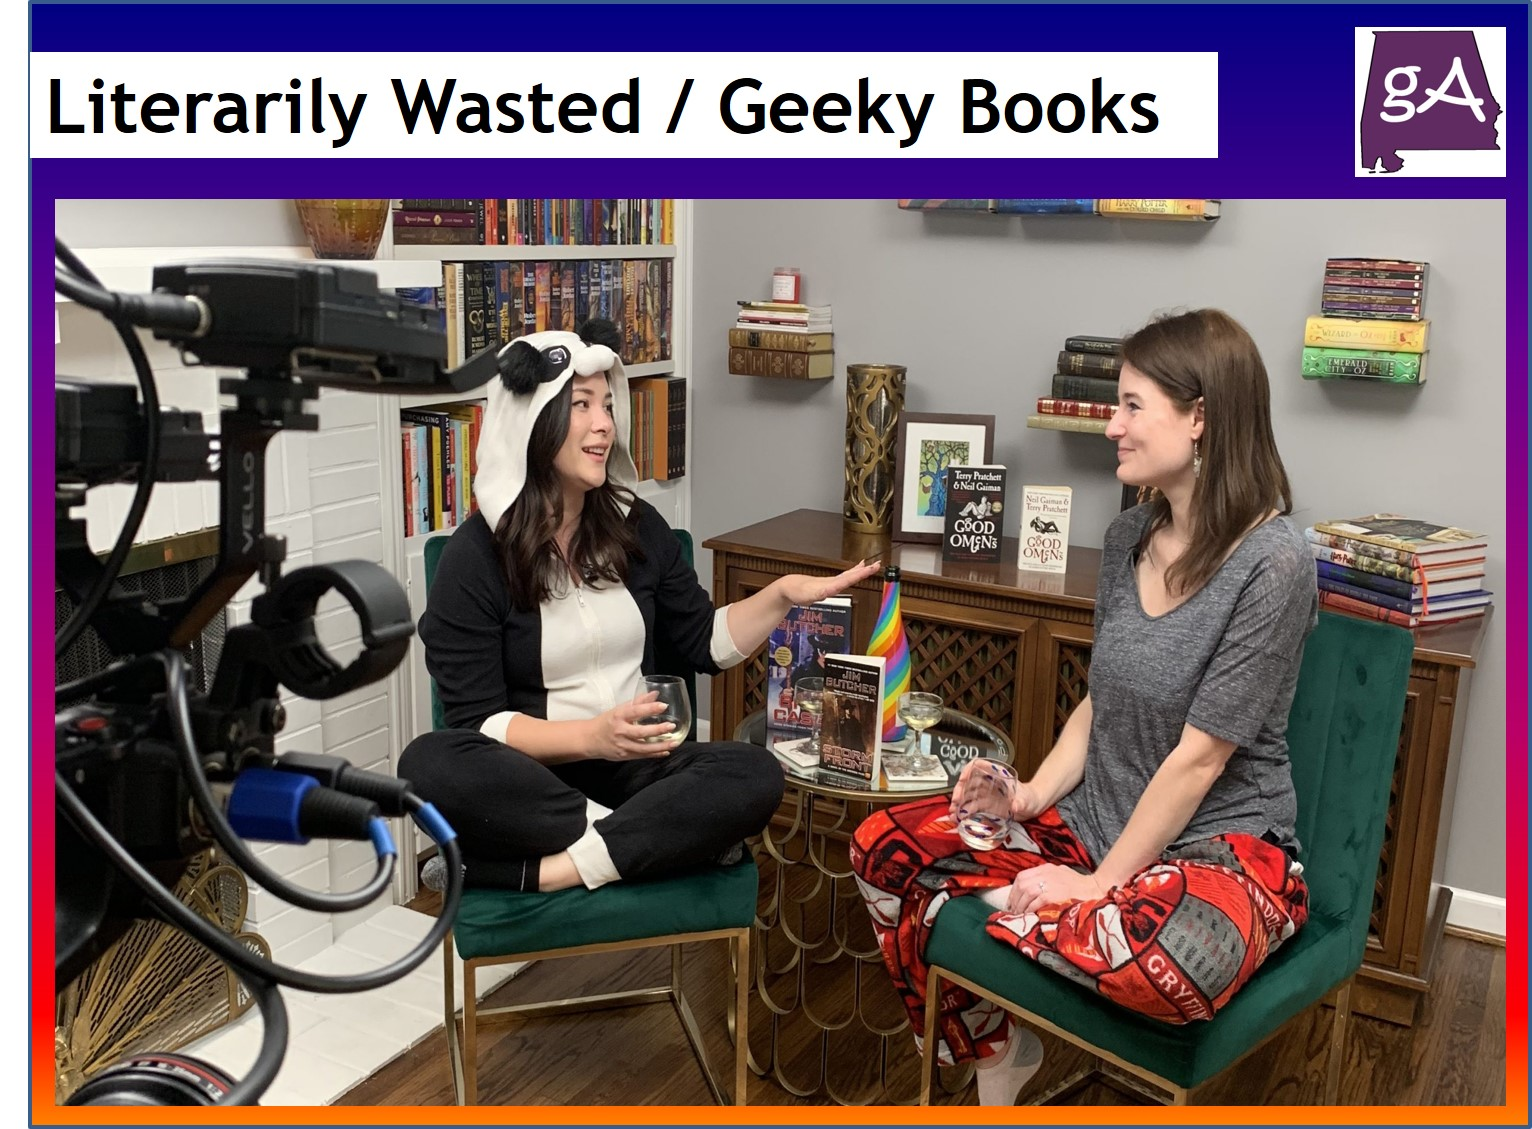 Literarily Wasted Online Book Club Brings Geeky Books To The People Geek Alabama Members of the it's a southern thing team included matt mitchell, haley laurence, adam schwartz, lauren musgrove, luke porter, justin yurkanin, elizabeth whitmire, talia lin… book club brings geeky books